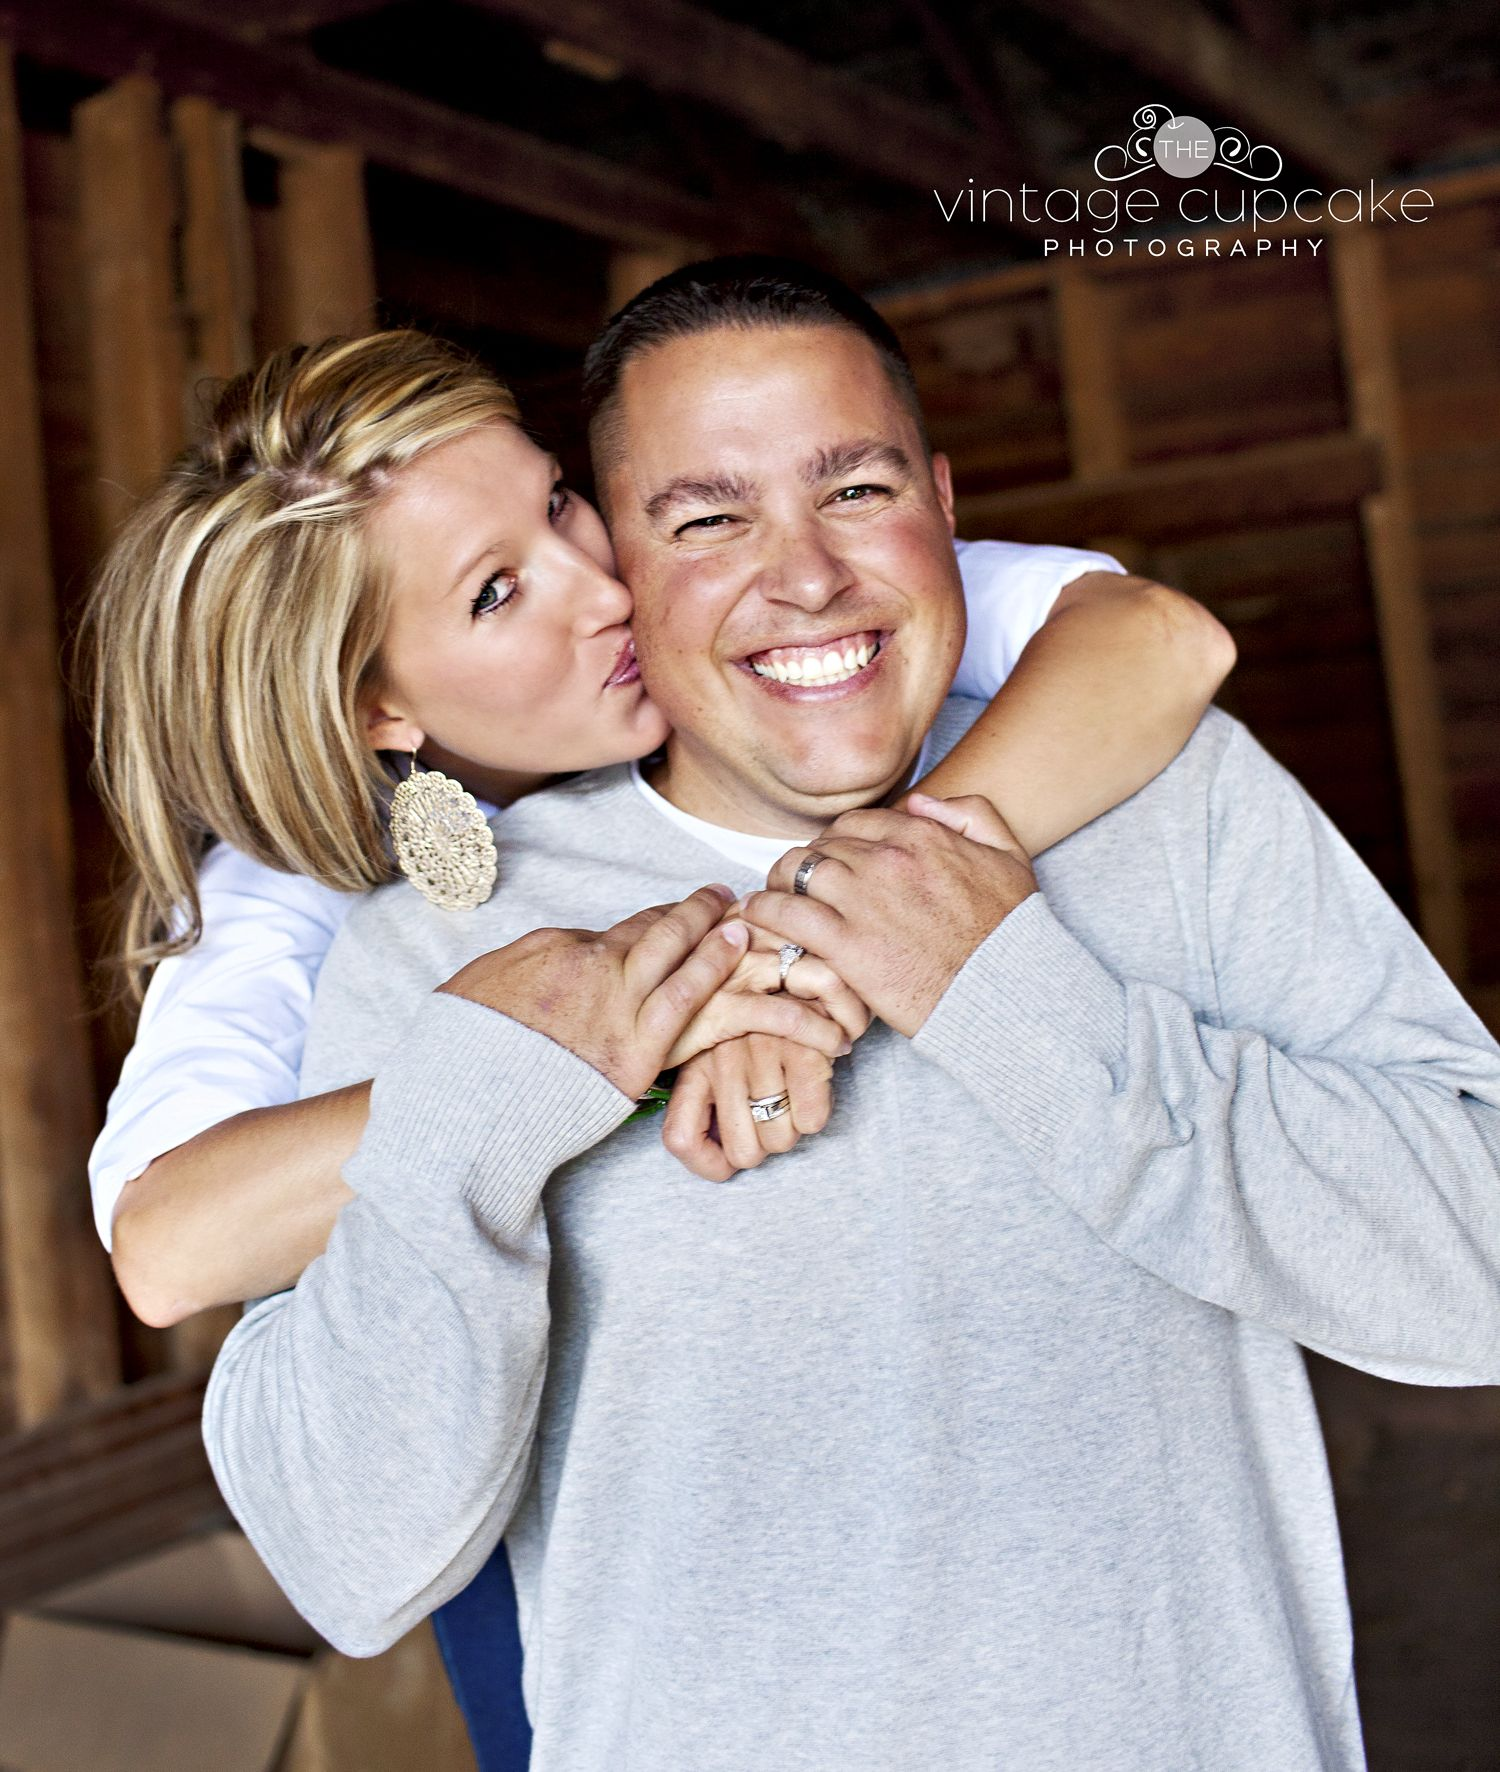 Wedding Poses With Parents: Husband And Wife Kissing In Old Barn For Family Fall Photo